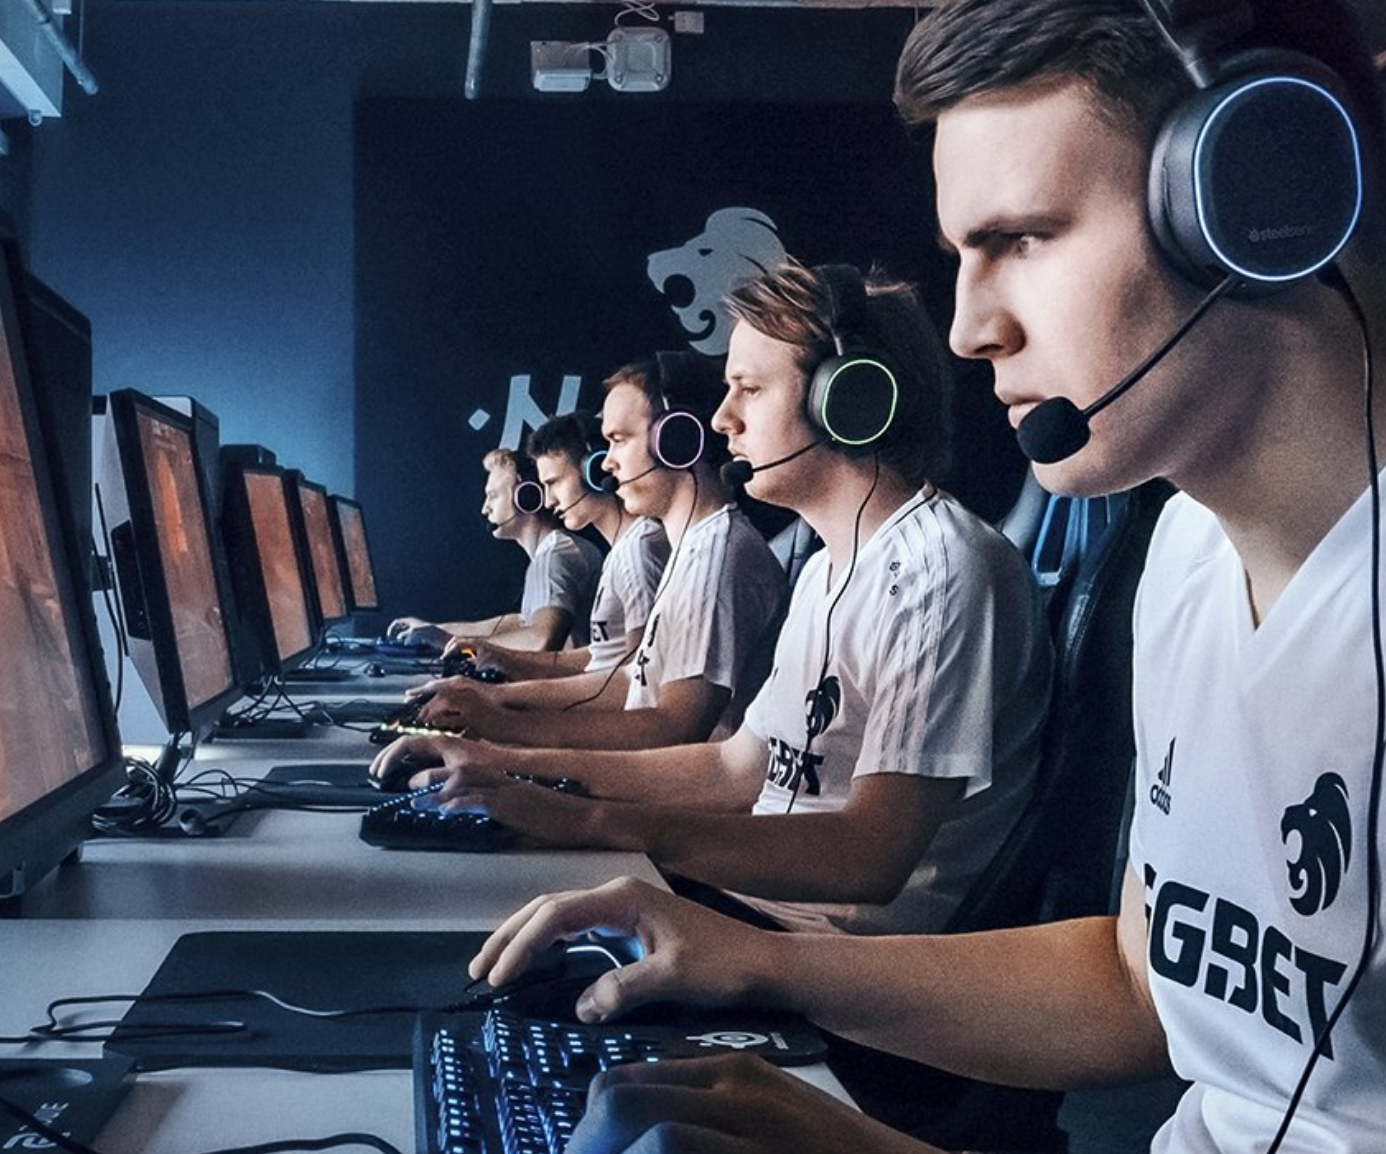 Steelseries Arctis Pro More Like No Alex Rowe Medium Headphone With Mic And Volume Wiring Diagram Be This Crowd Of Similar Looking Men Buy Your Today Or Dont